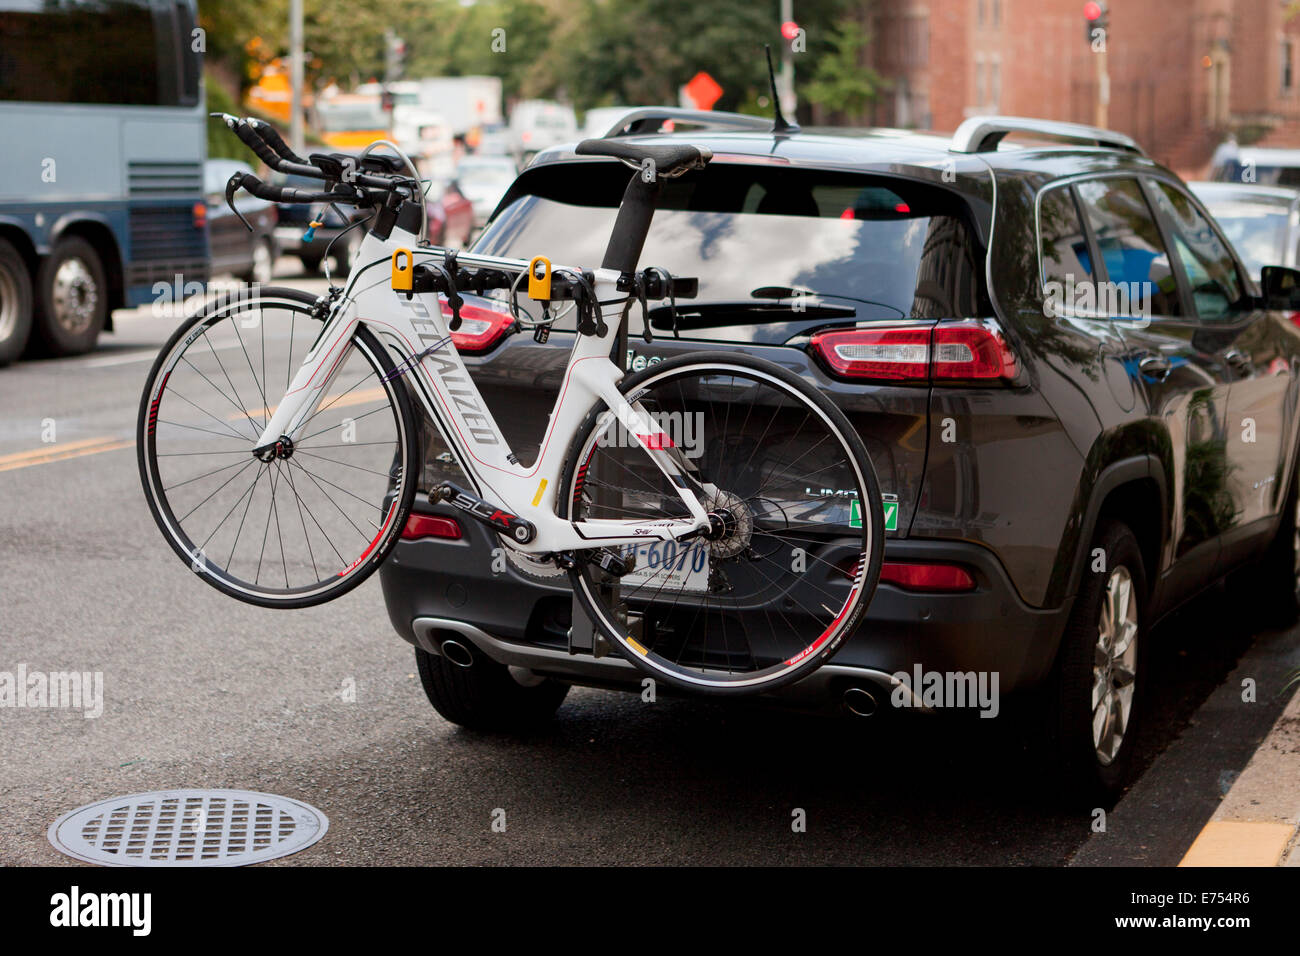 Bicycle on rear mounted bike rack - USA - Stock Image